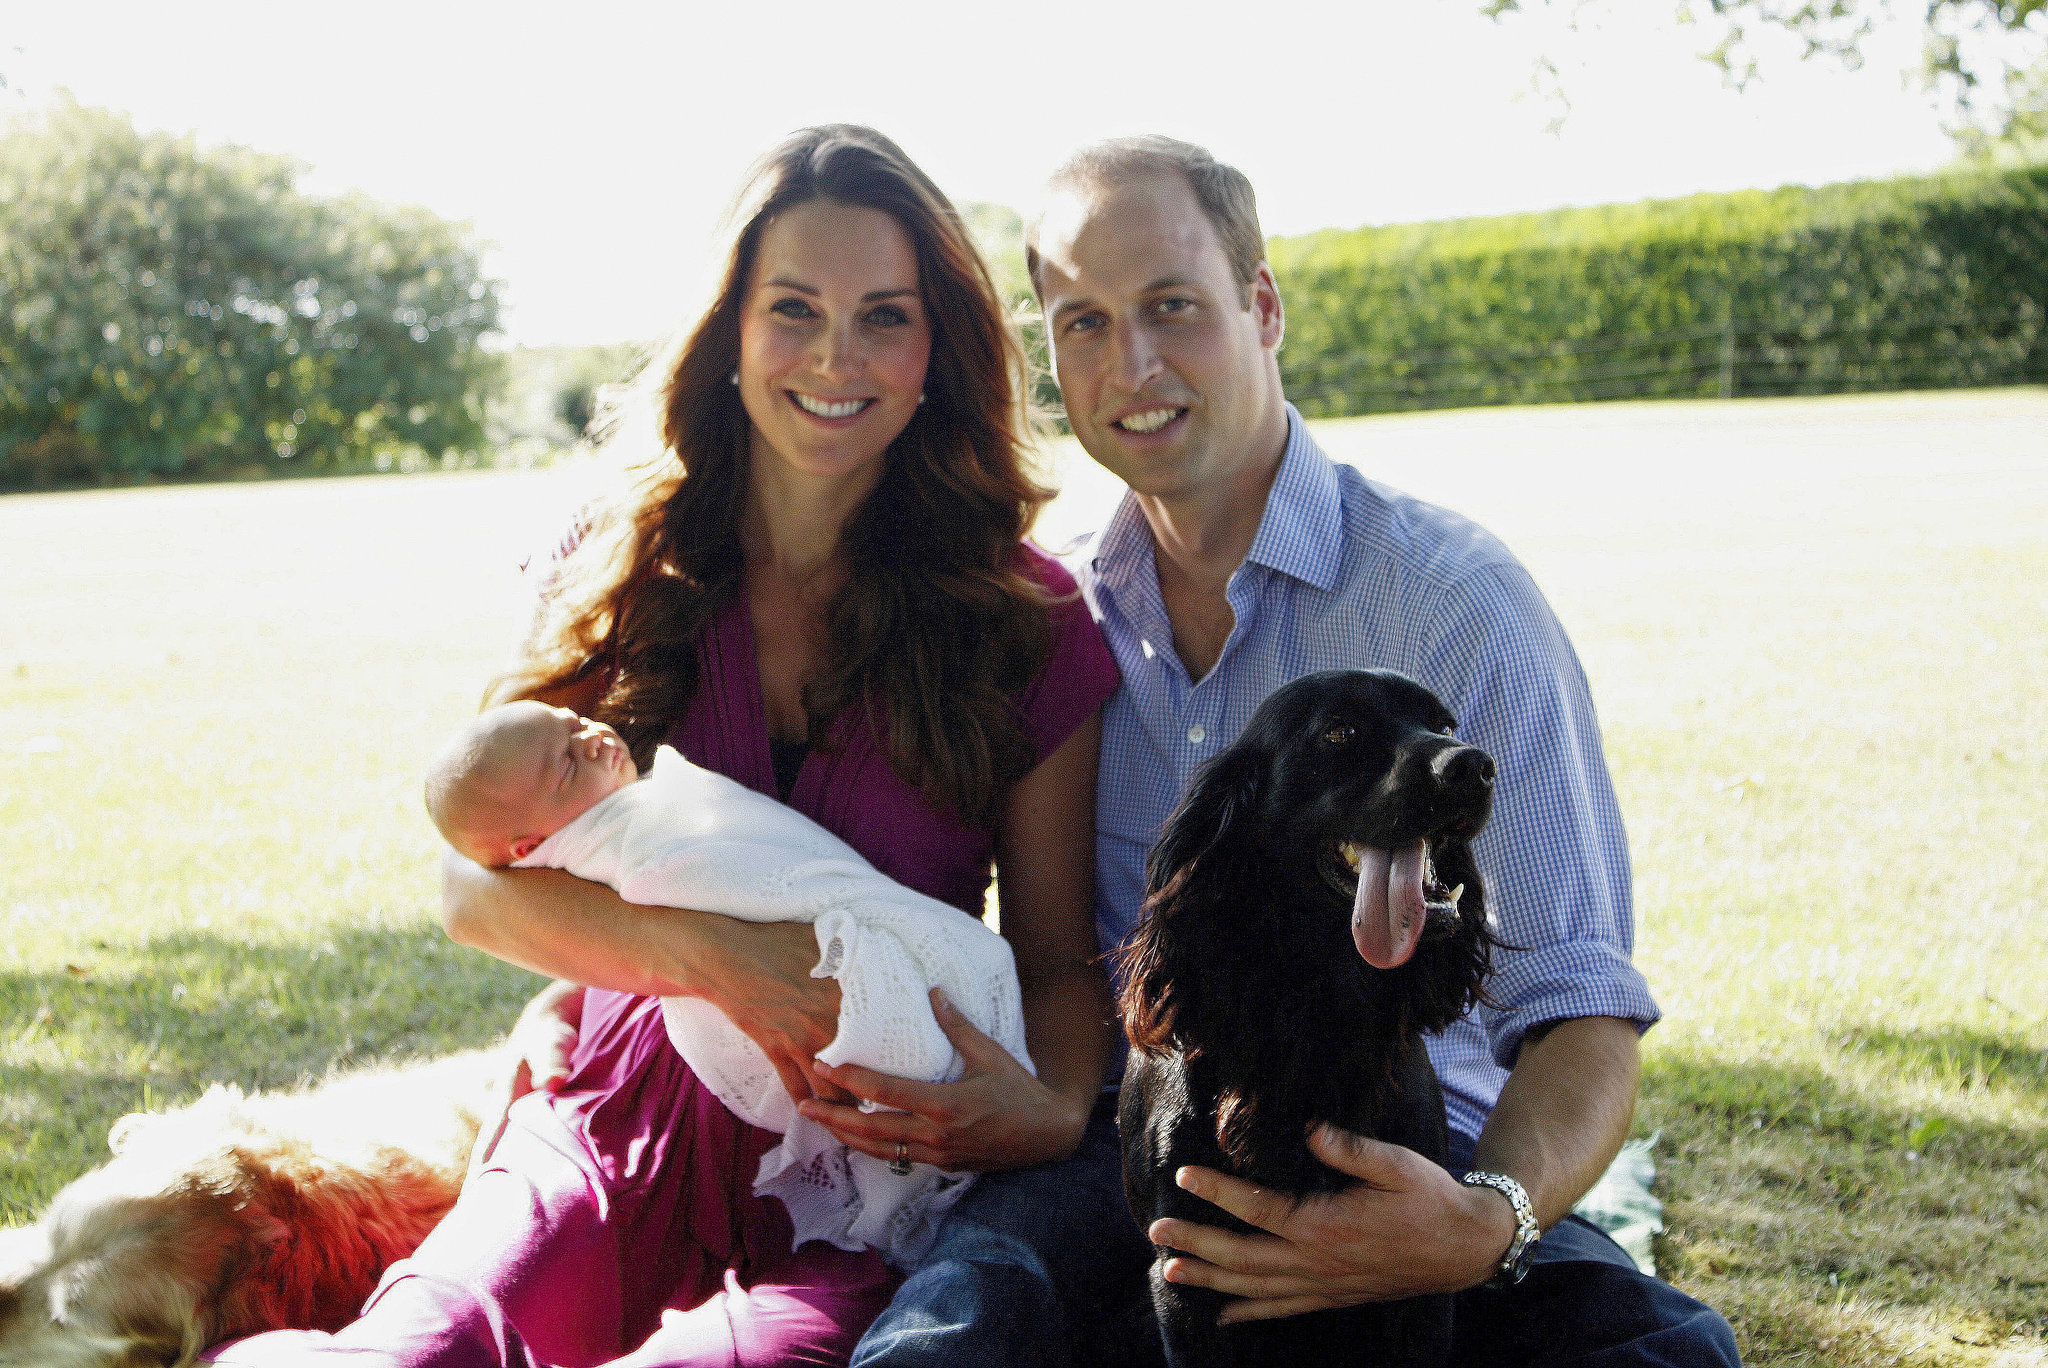 In August 2013, William and Kate released a photo taken at the Middleton family home by Kate's father, Michael.